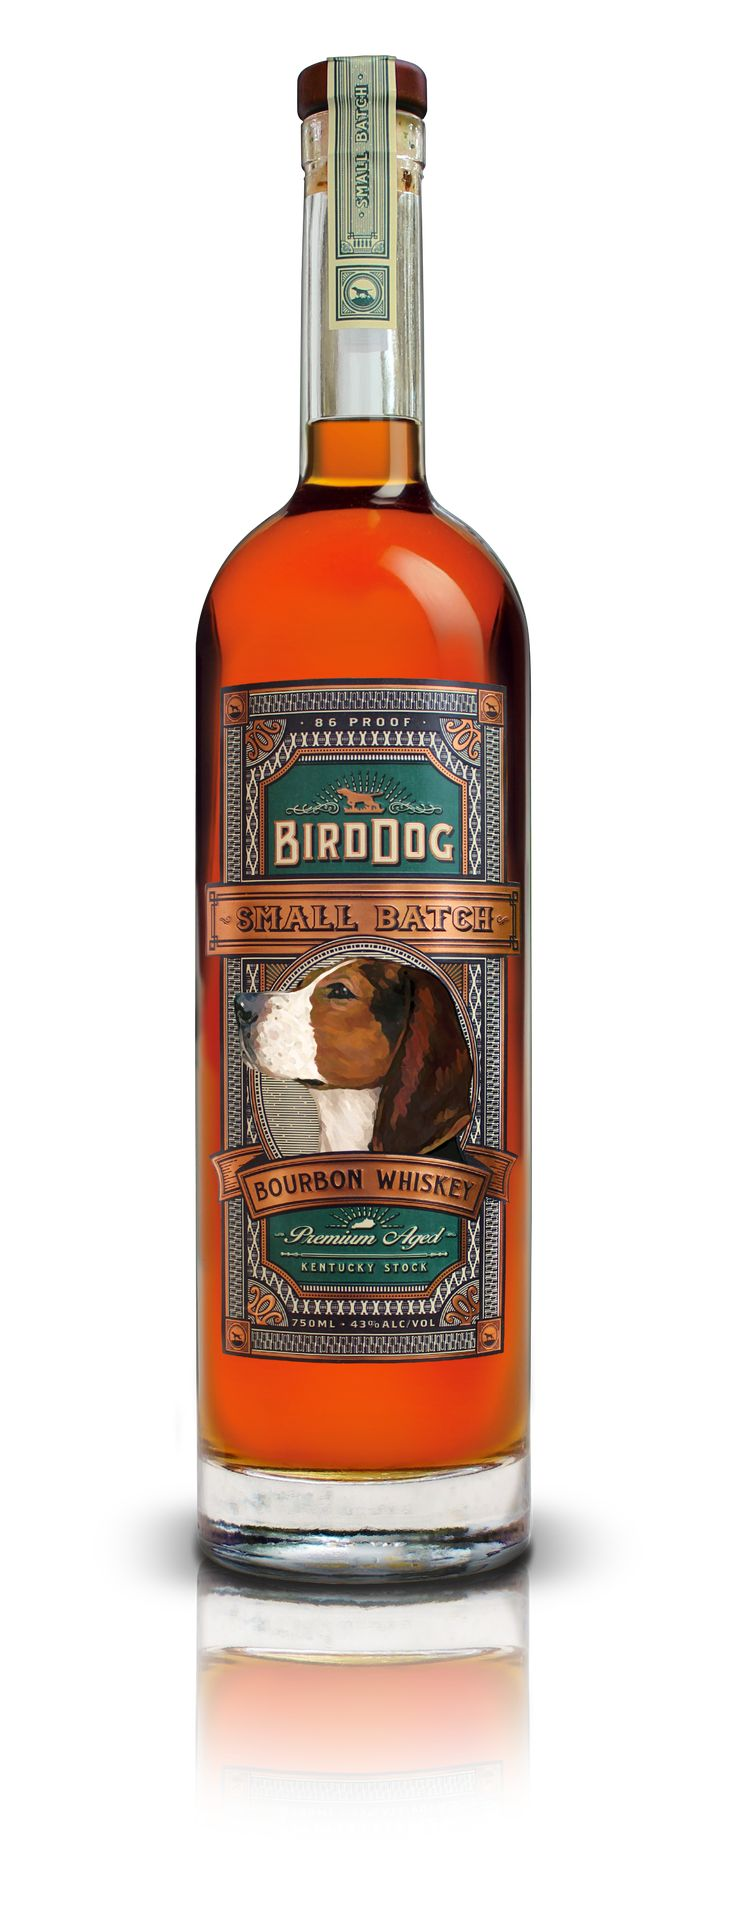 Bird Dog Small Batch Bourbon Whiskey has an elaborate medley of corn, malted barley and rye that formulates into a distinctive gentle bourbon.